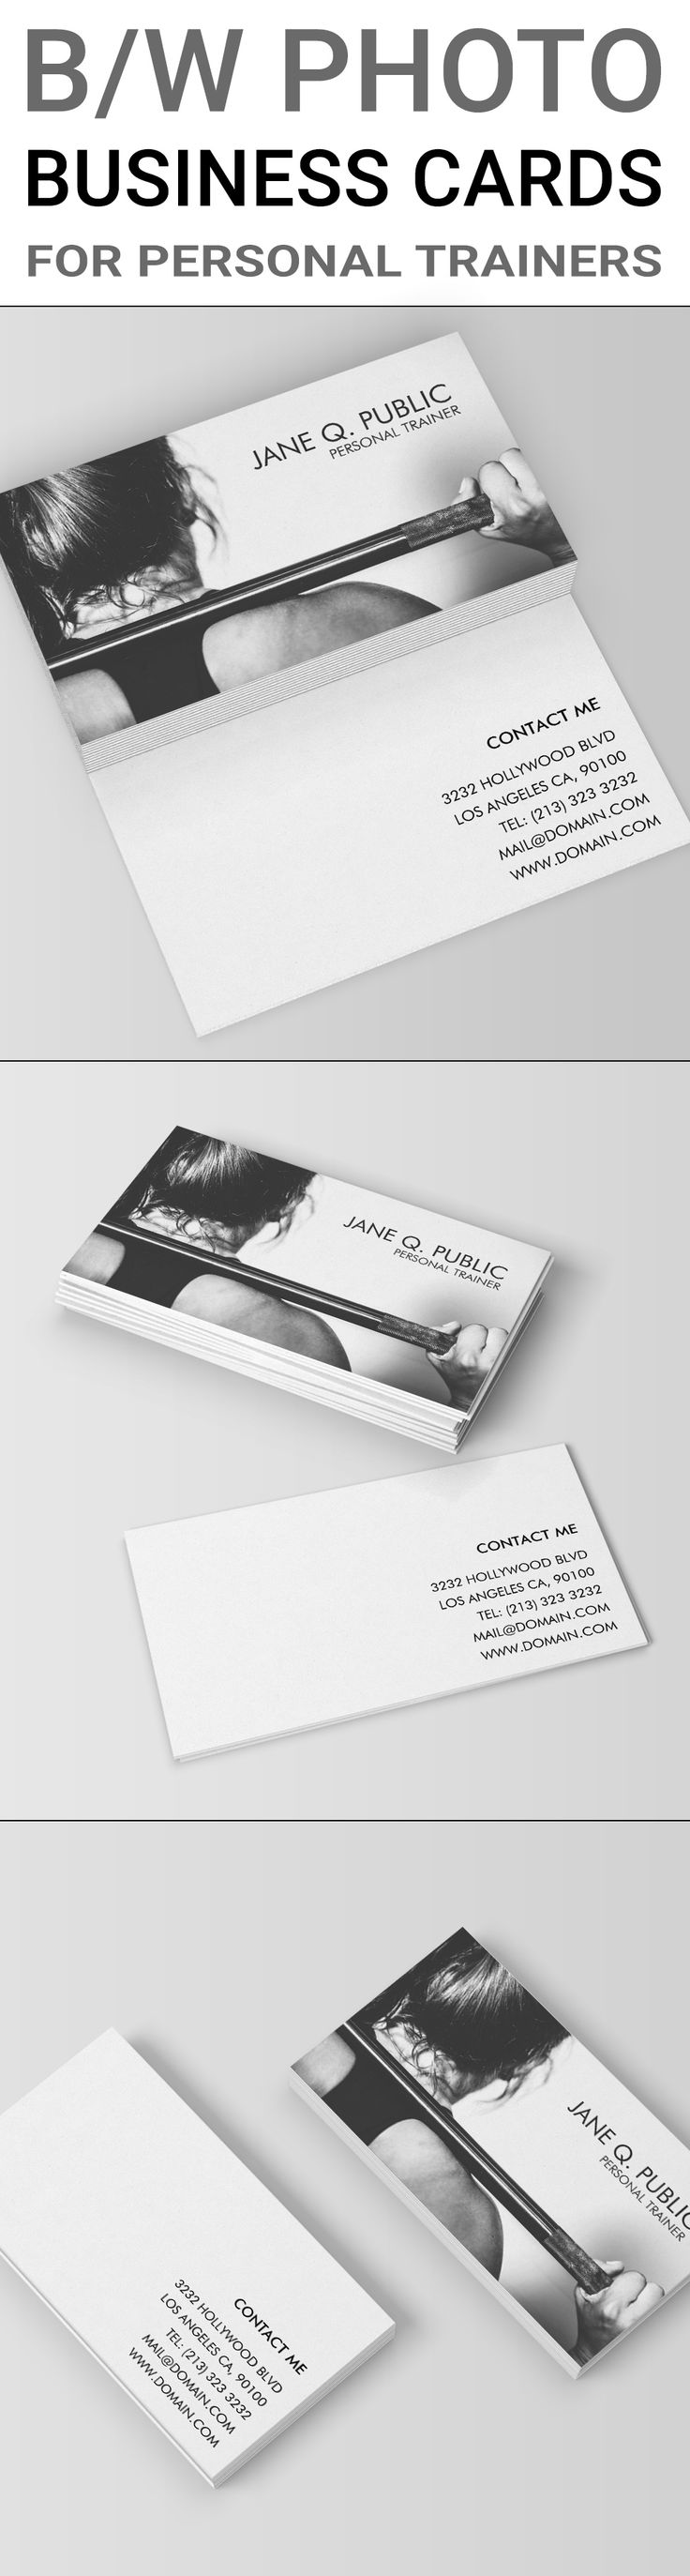 343 best business card showcase images on pinterest